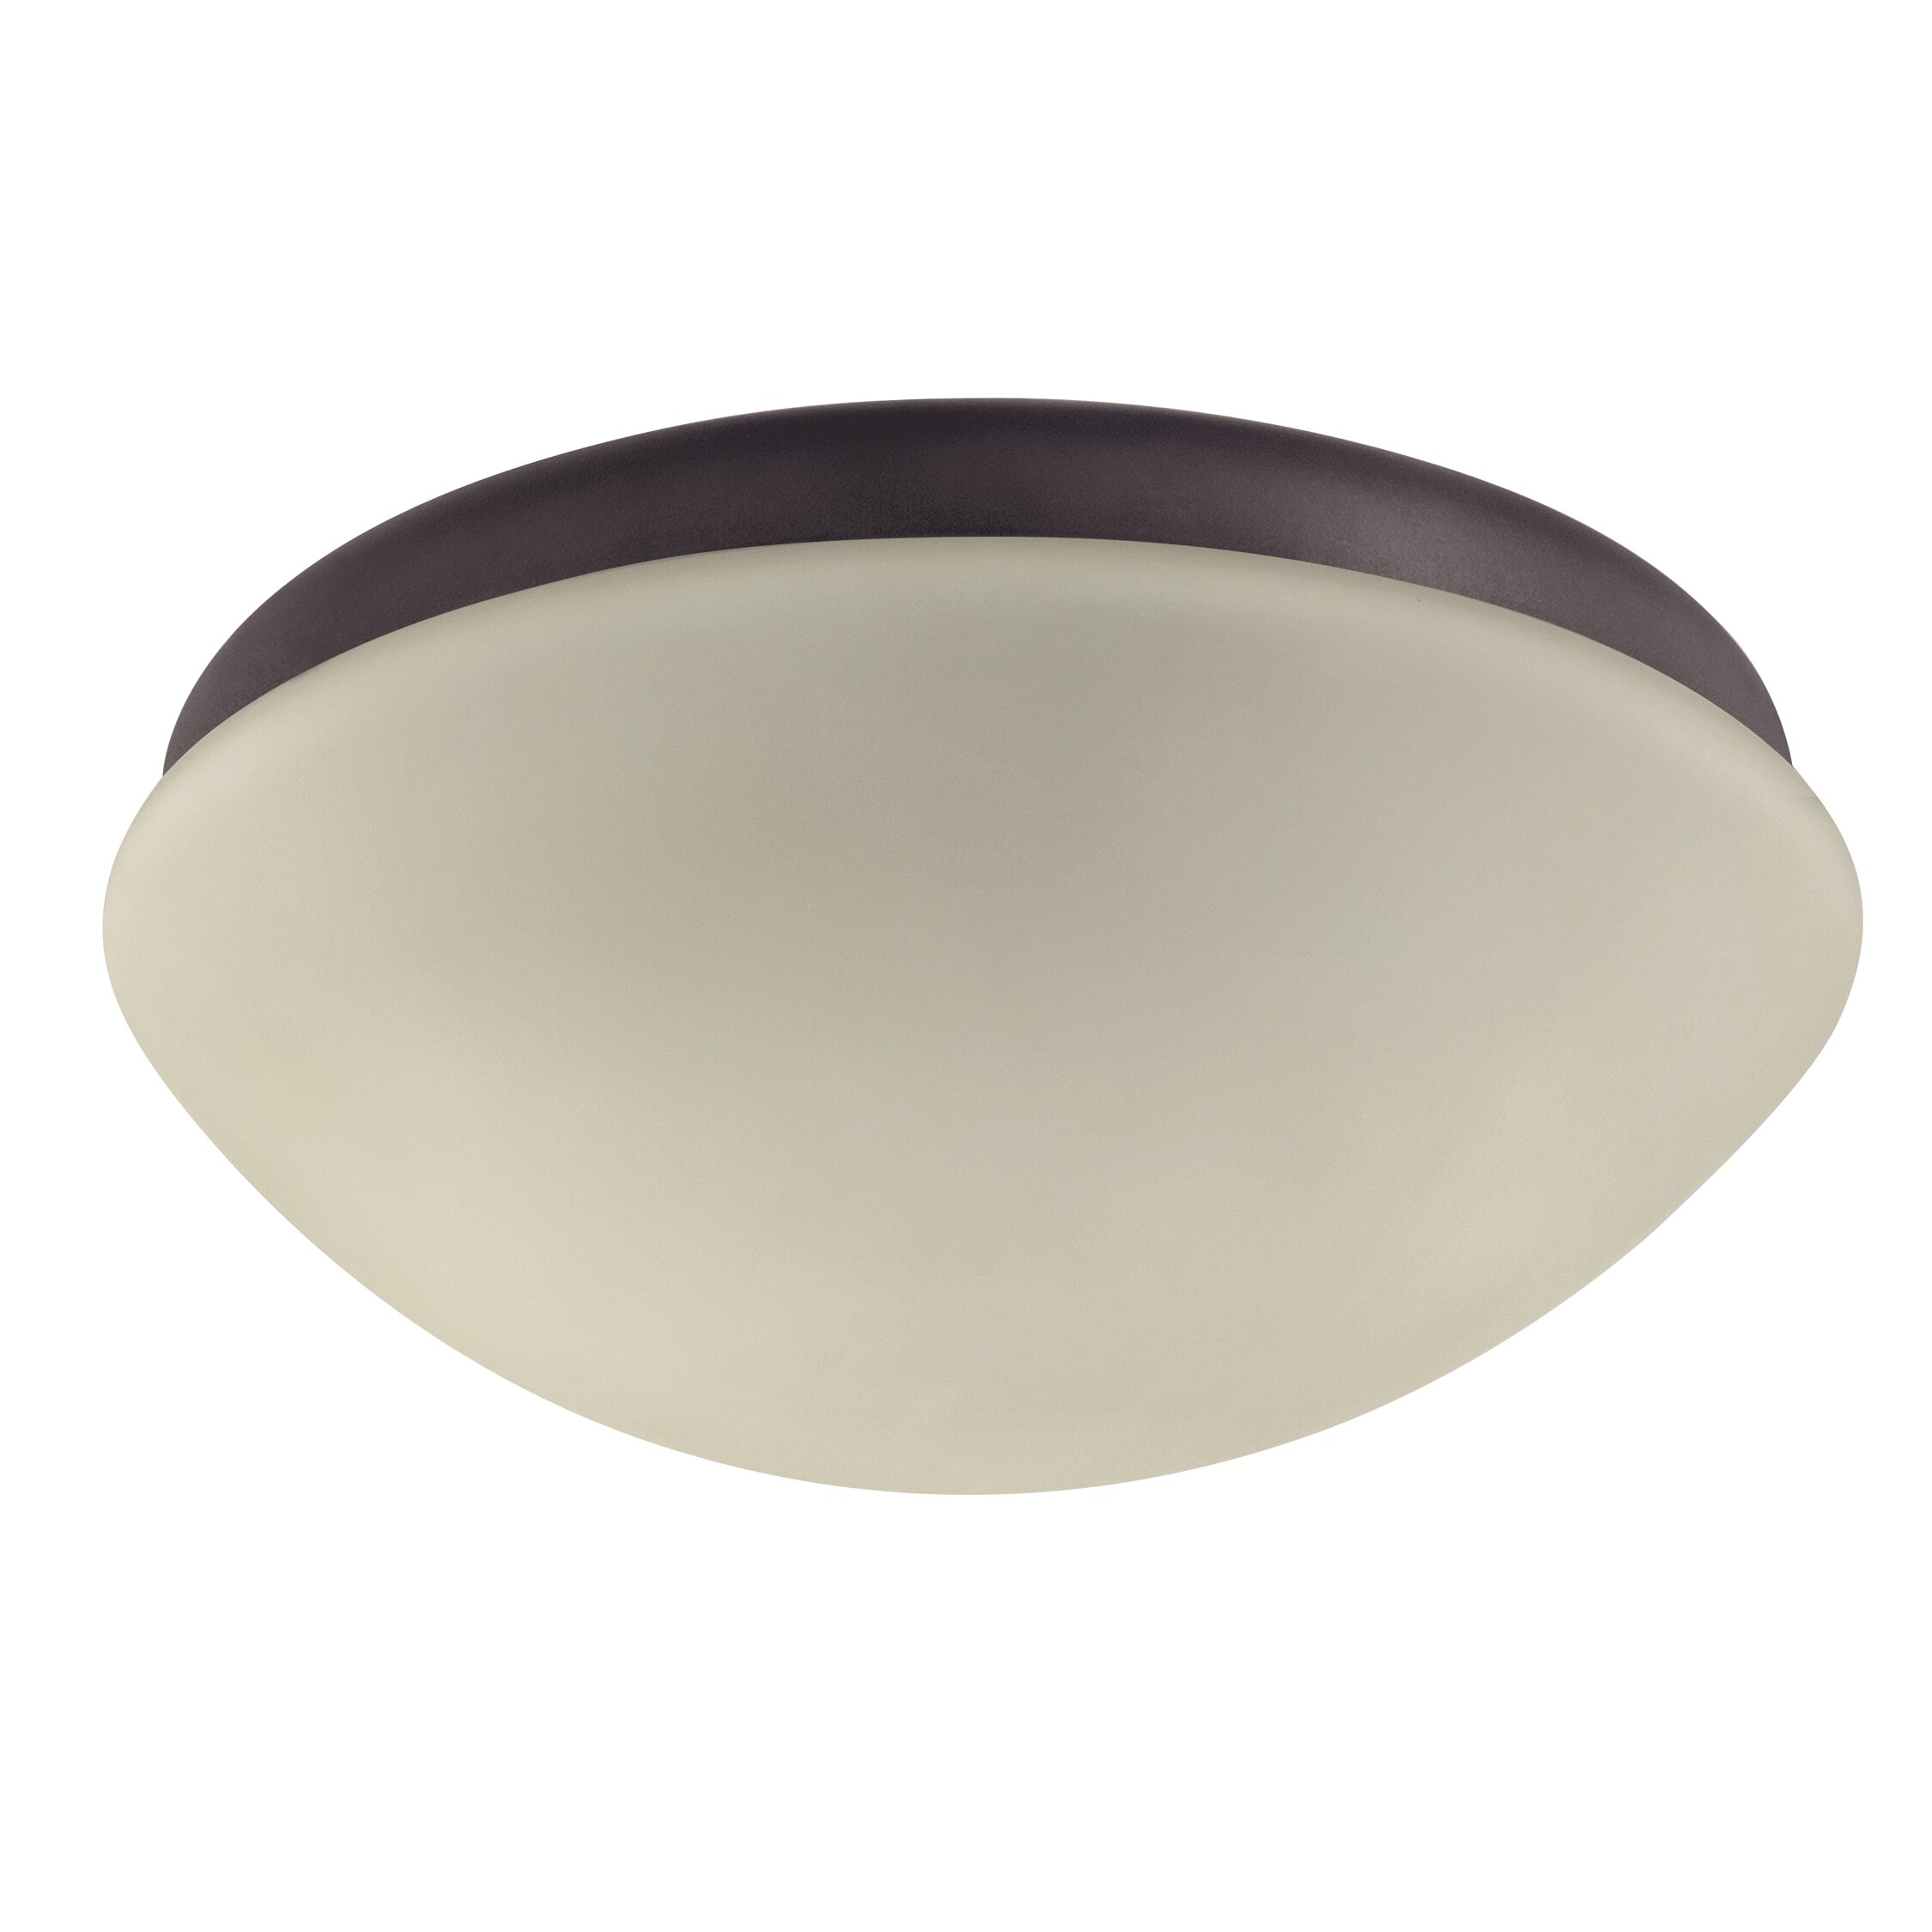 Low Profile Ceiling Light For Kids Play Room